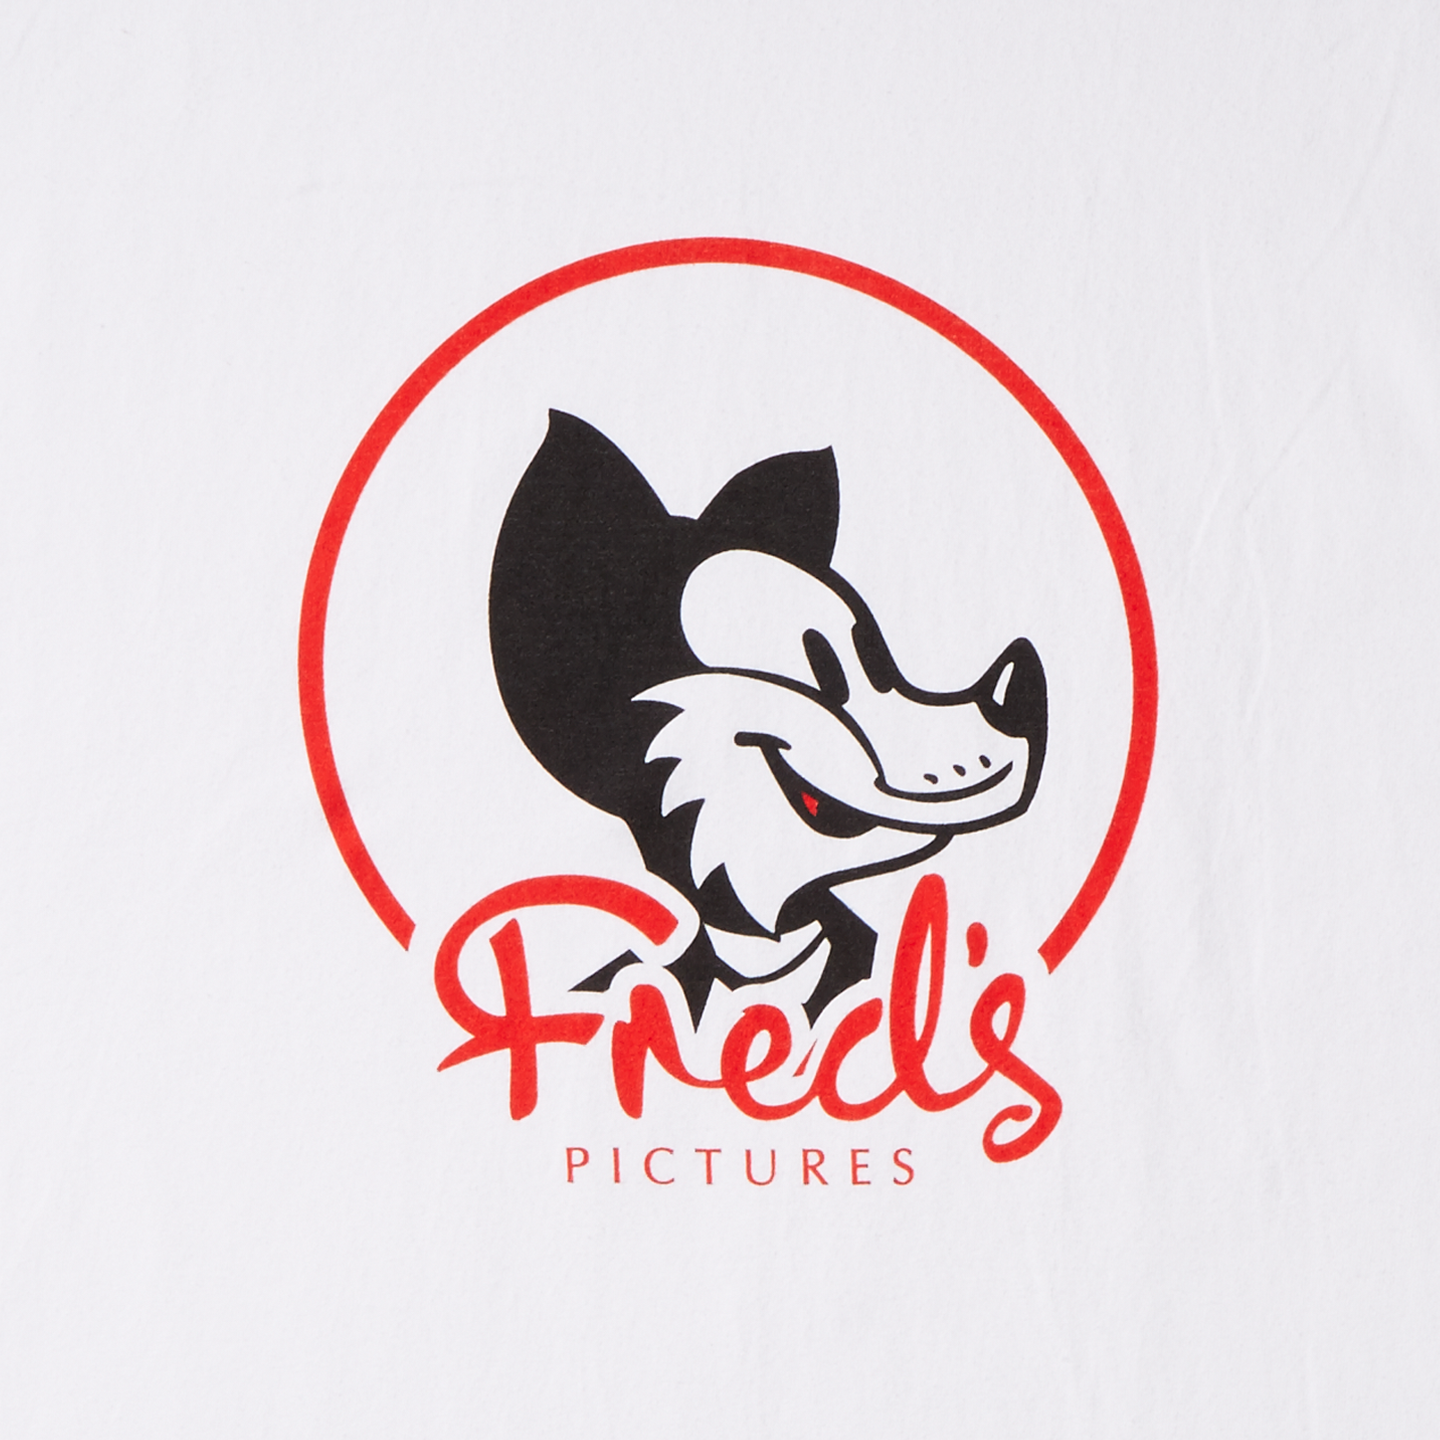 Fred's Pictures Tee